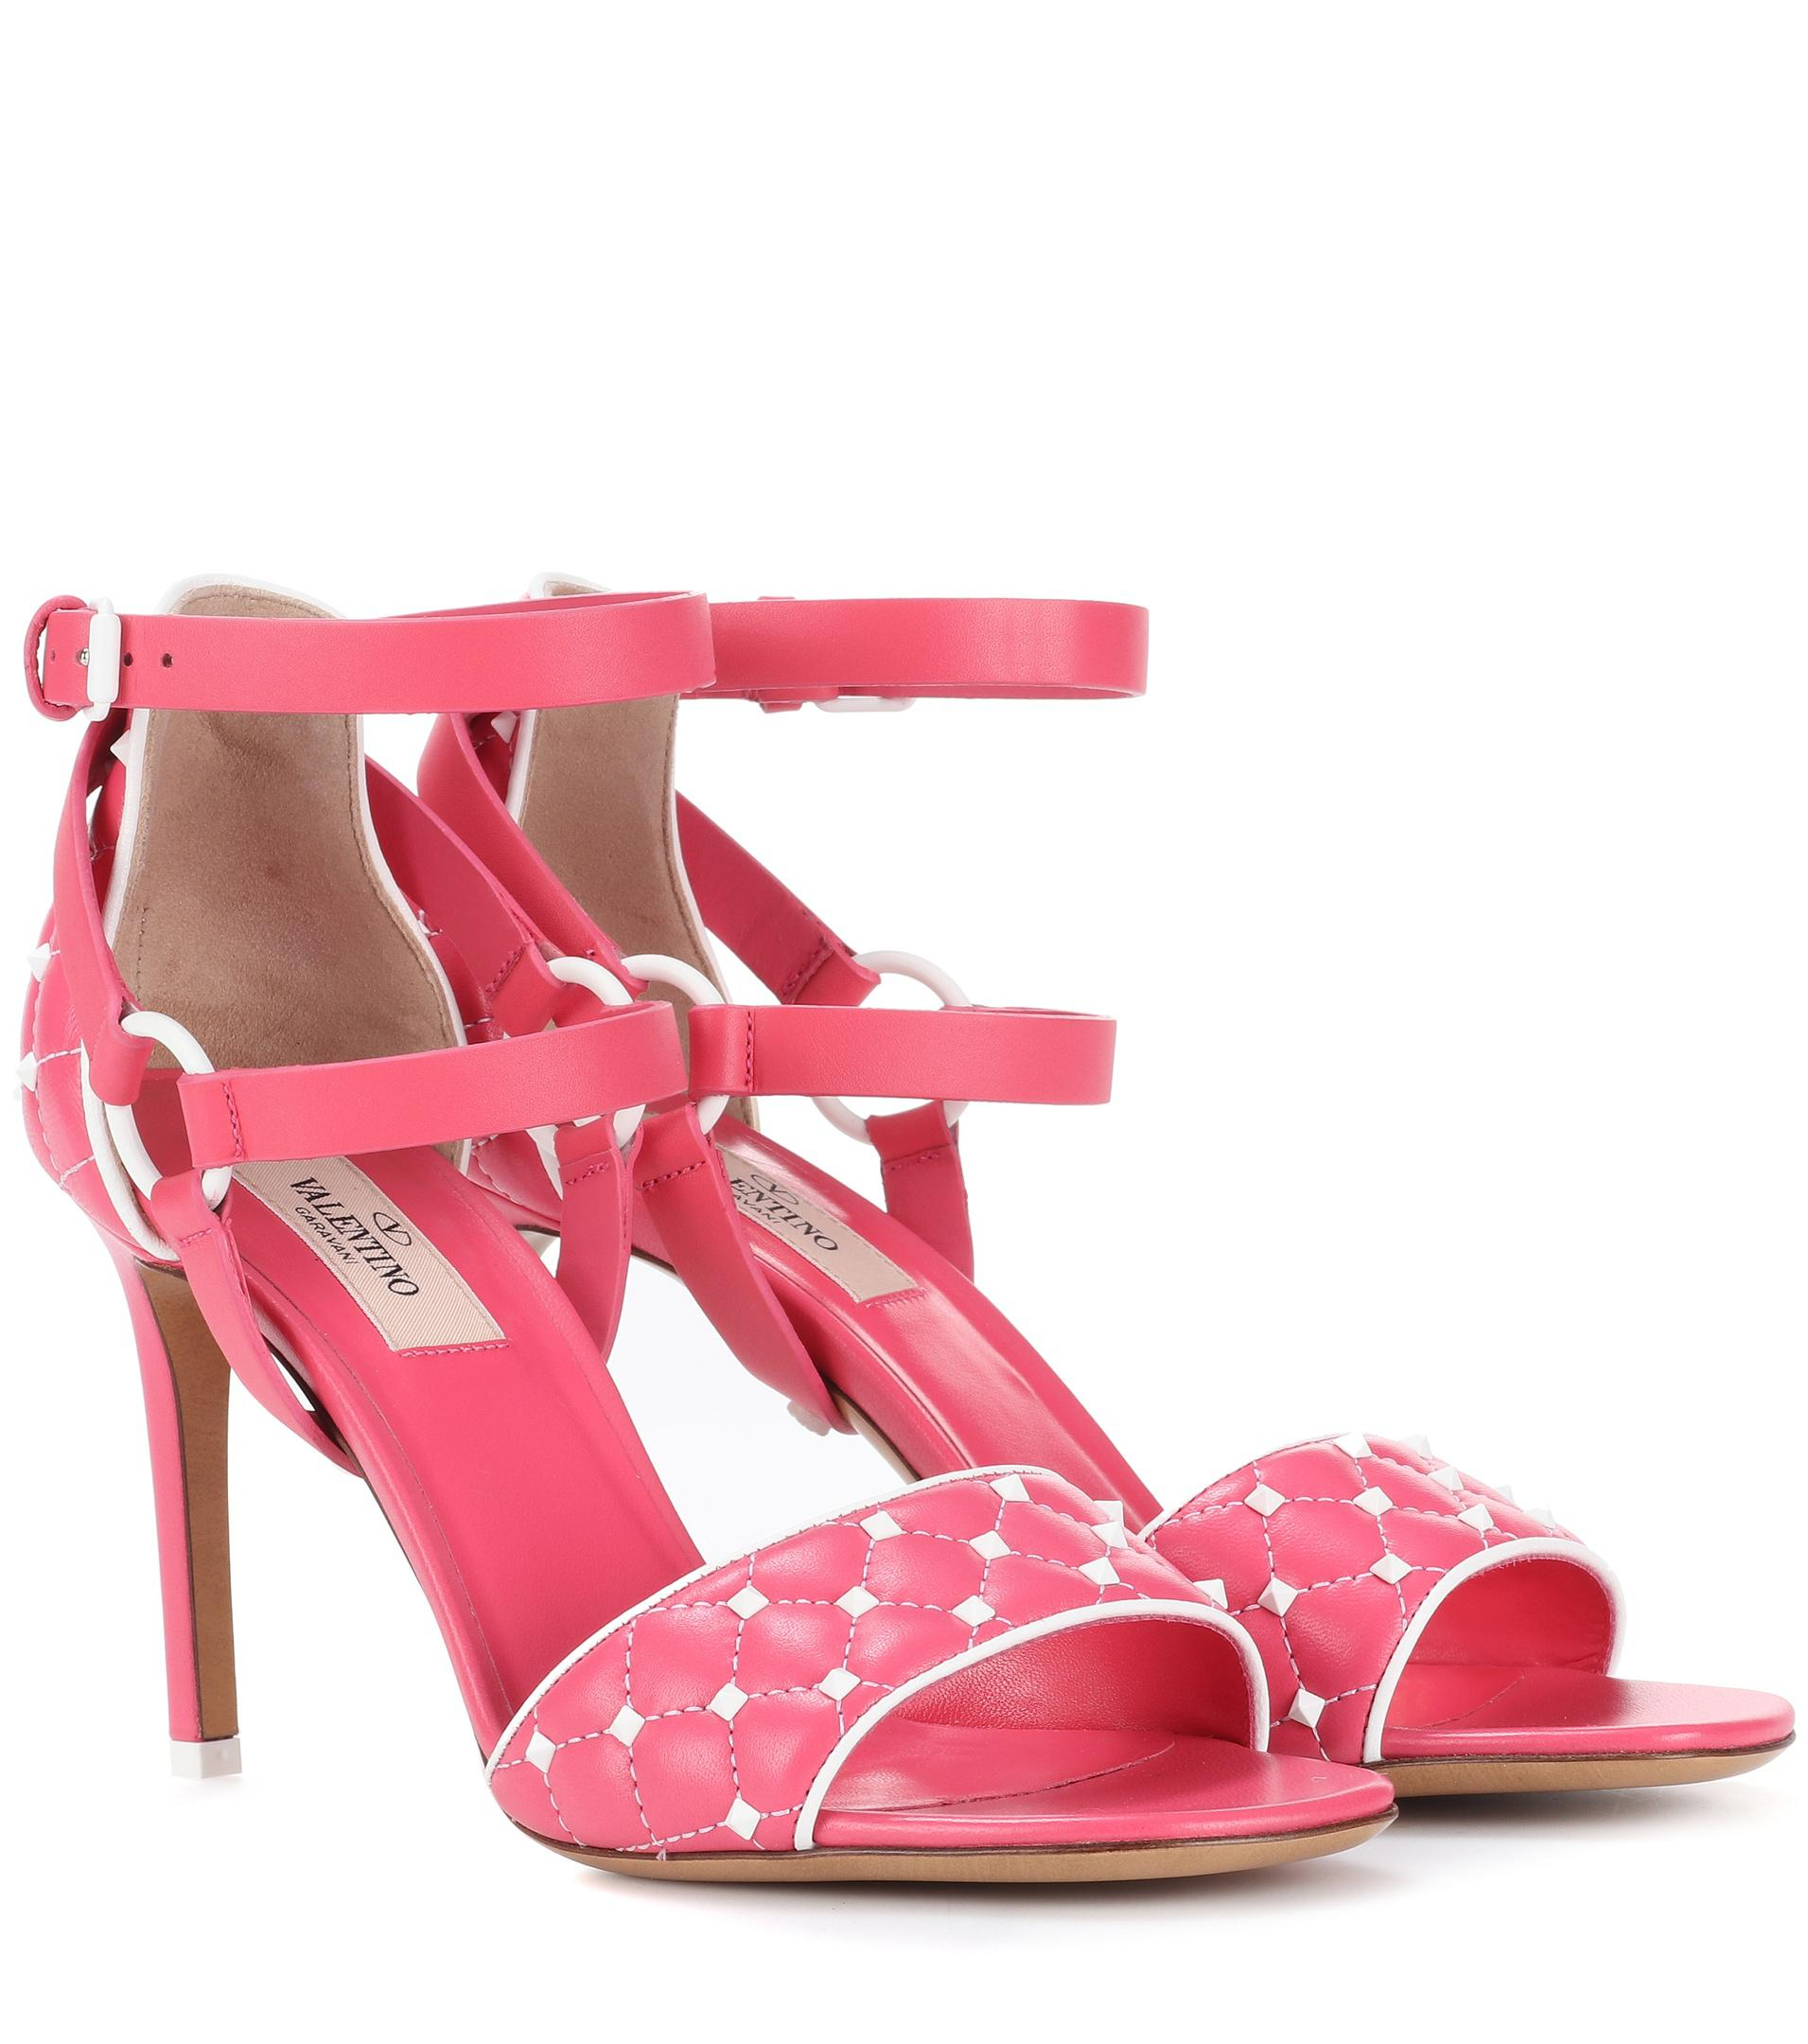 4ae9a6518aa3 Valentino - Pink Free Rockstud Spike 90 Leather Sandals - Lyst. View  fullscreen